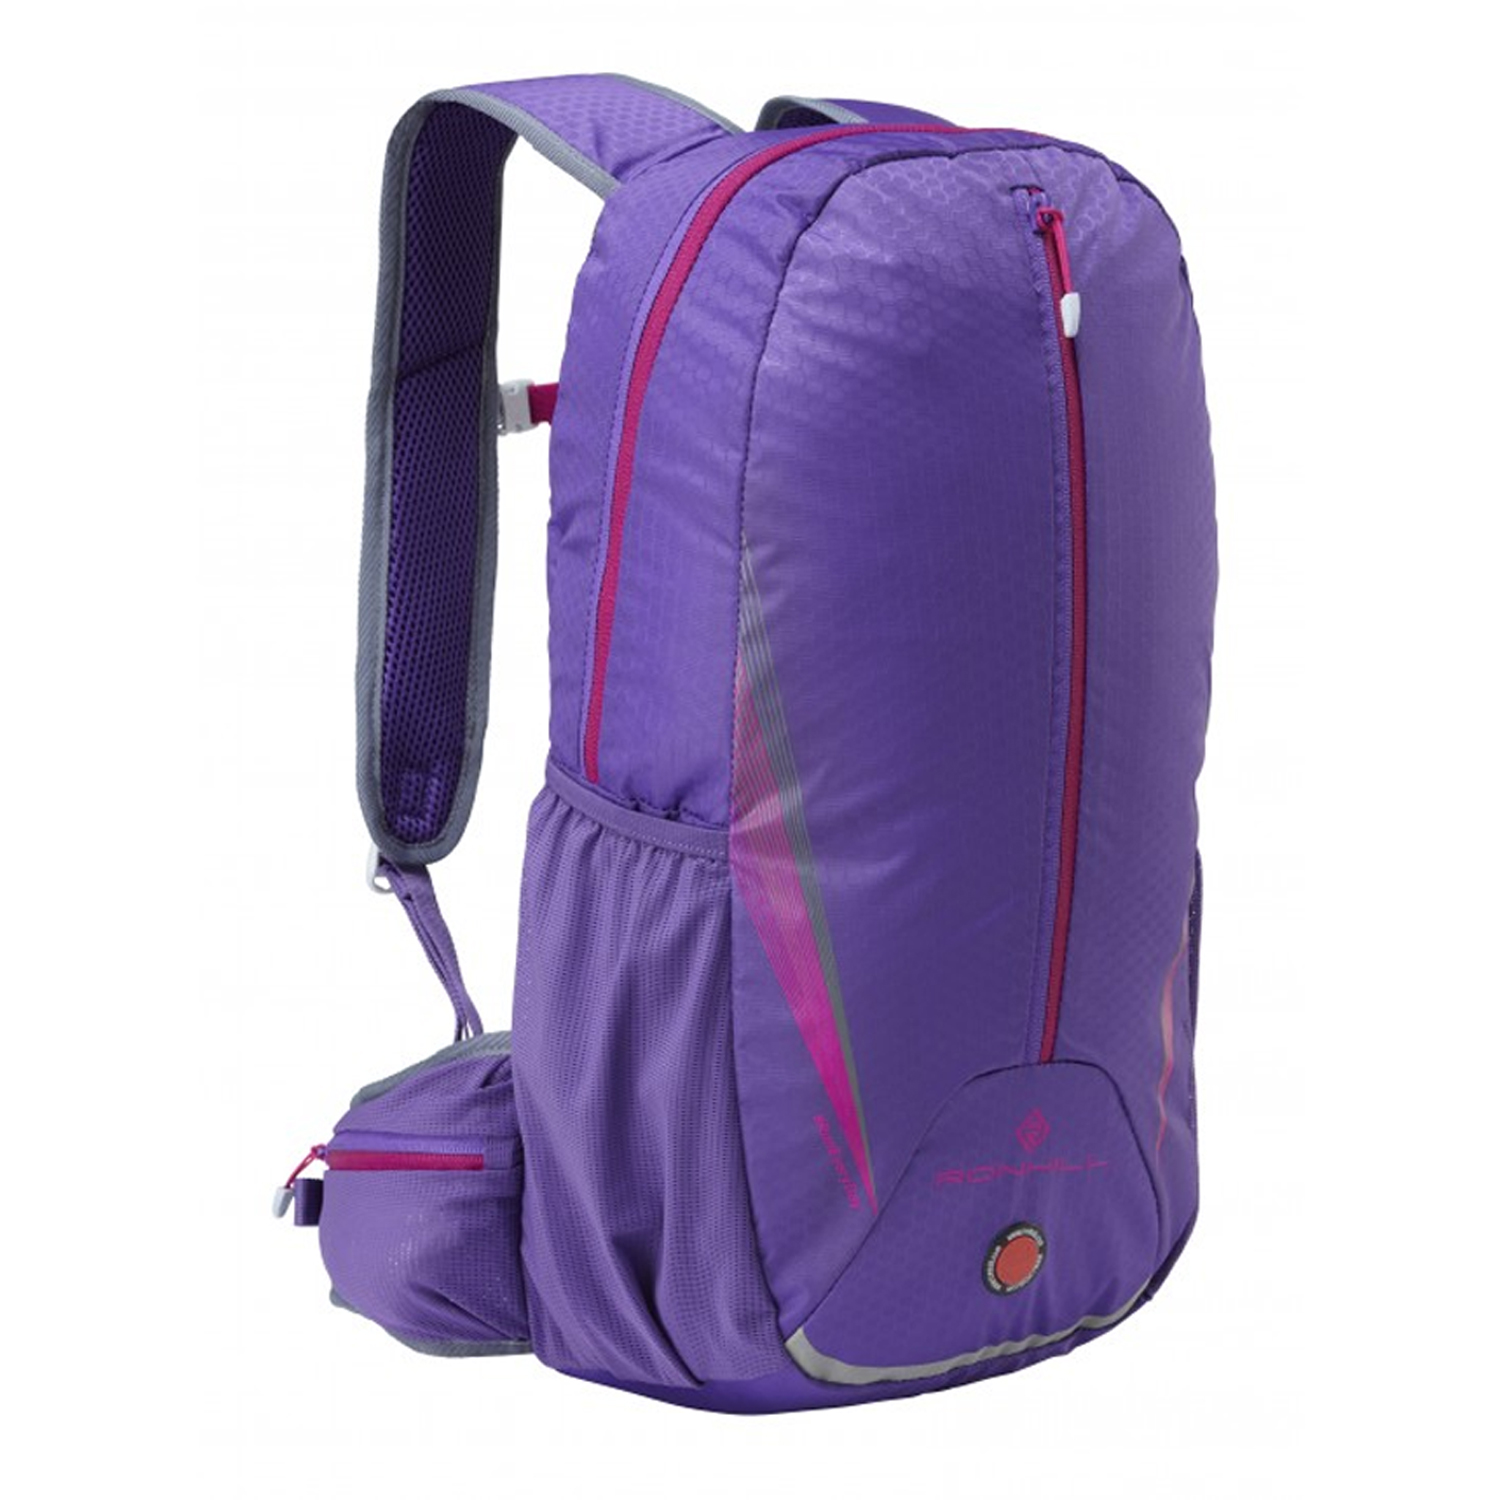 An image of Ronhill Commuter 15L Pack - One Size, ROYAL PURPLE/FUSCHIA